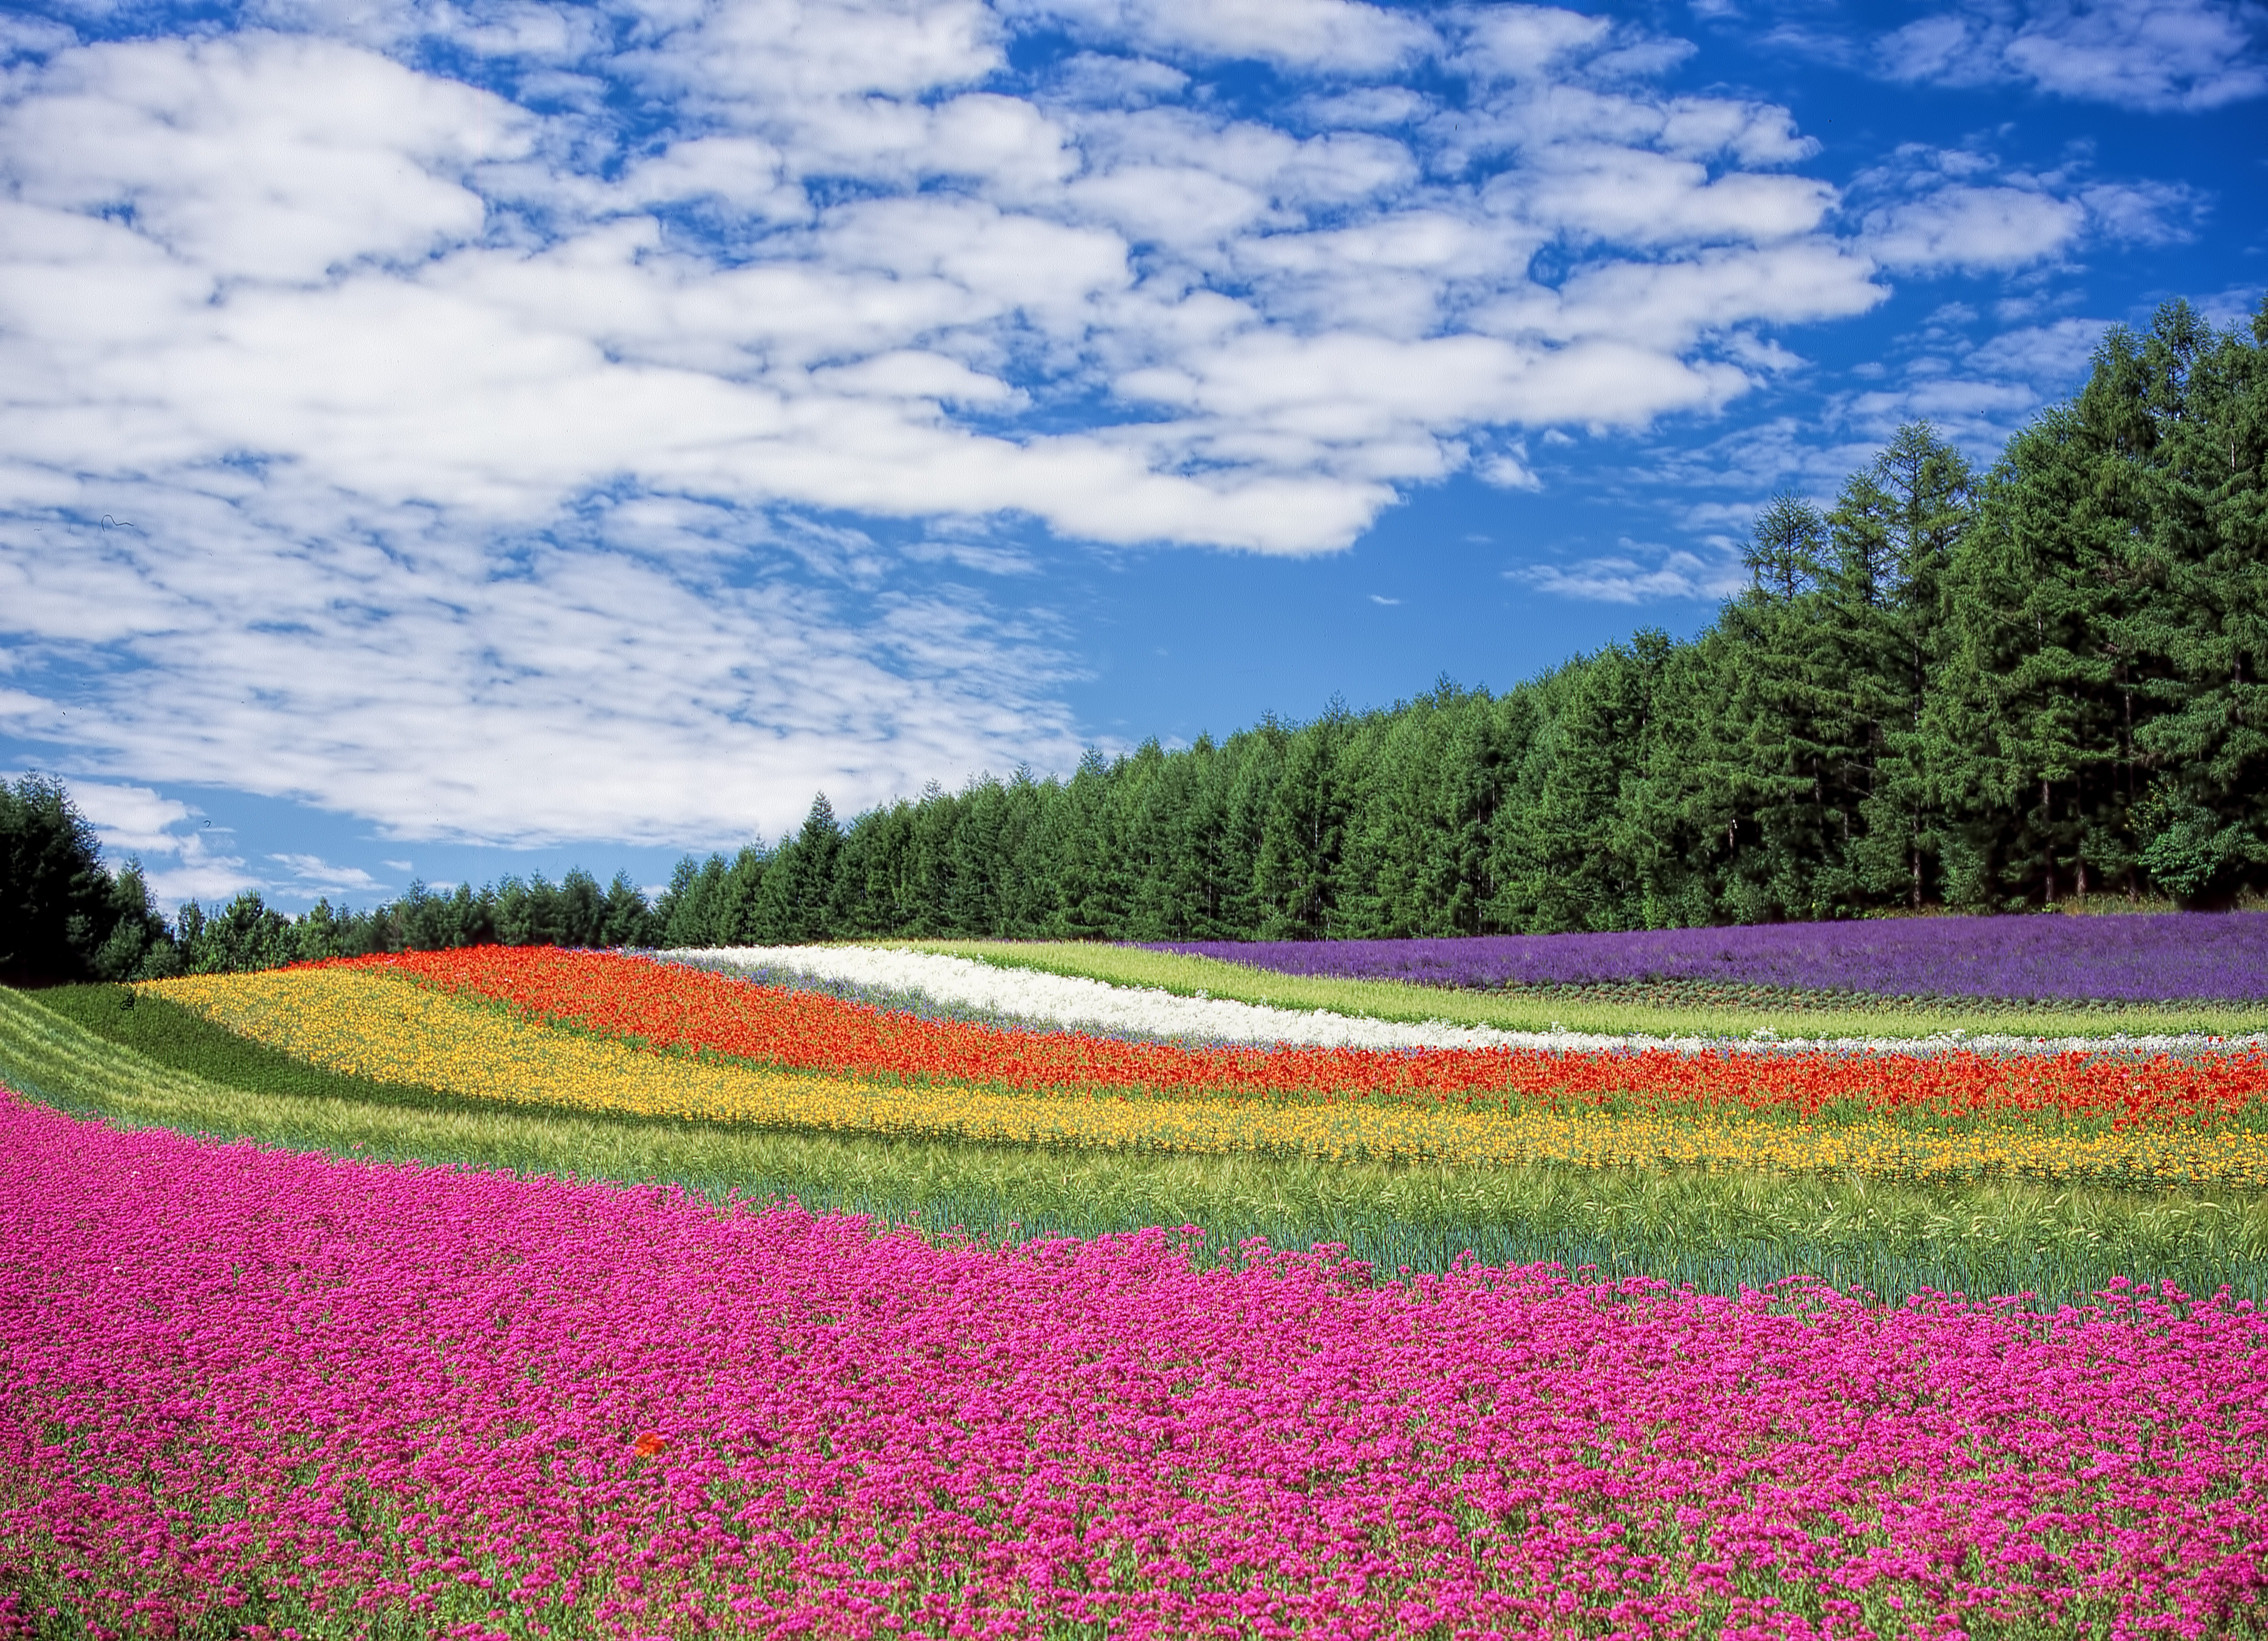 Red Yellow and Orange Flower Field, Nature, Petals, Trees, Flowers, HQ Photo